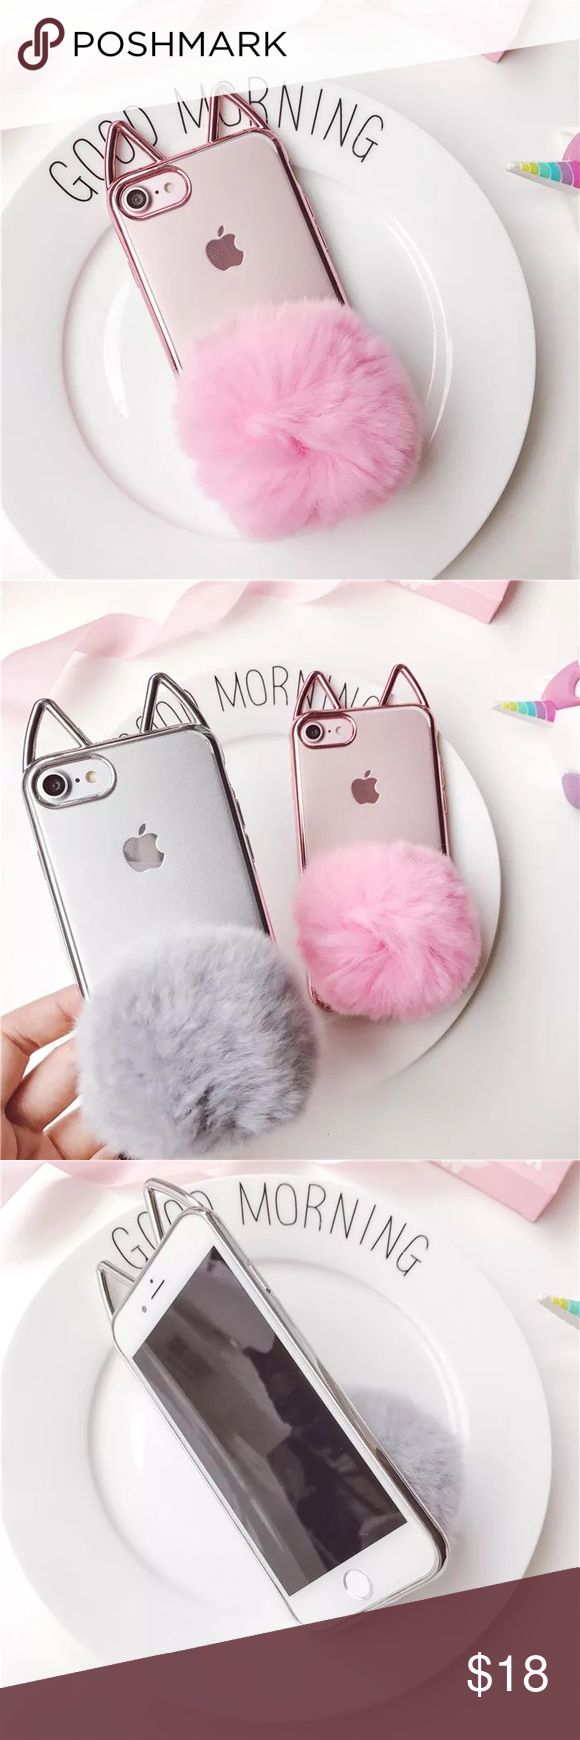 iPhone 7  cat ear bumper furry Pom phone case ▶️shinny rose gold bumper with cat  ear and little furry Pom at the back  ▶️brand new and high quality  ▶️hard crystal clear acrylic back panel ▶️to protect your phone from shock and friction, anti-vibration and prevent breaking  ▶️precisely cut openings to allow full access to all the functions your iPhone 7  ▶️easy to install and disassemble  ▶️match your different style and occasion Accessories Phone Cases